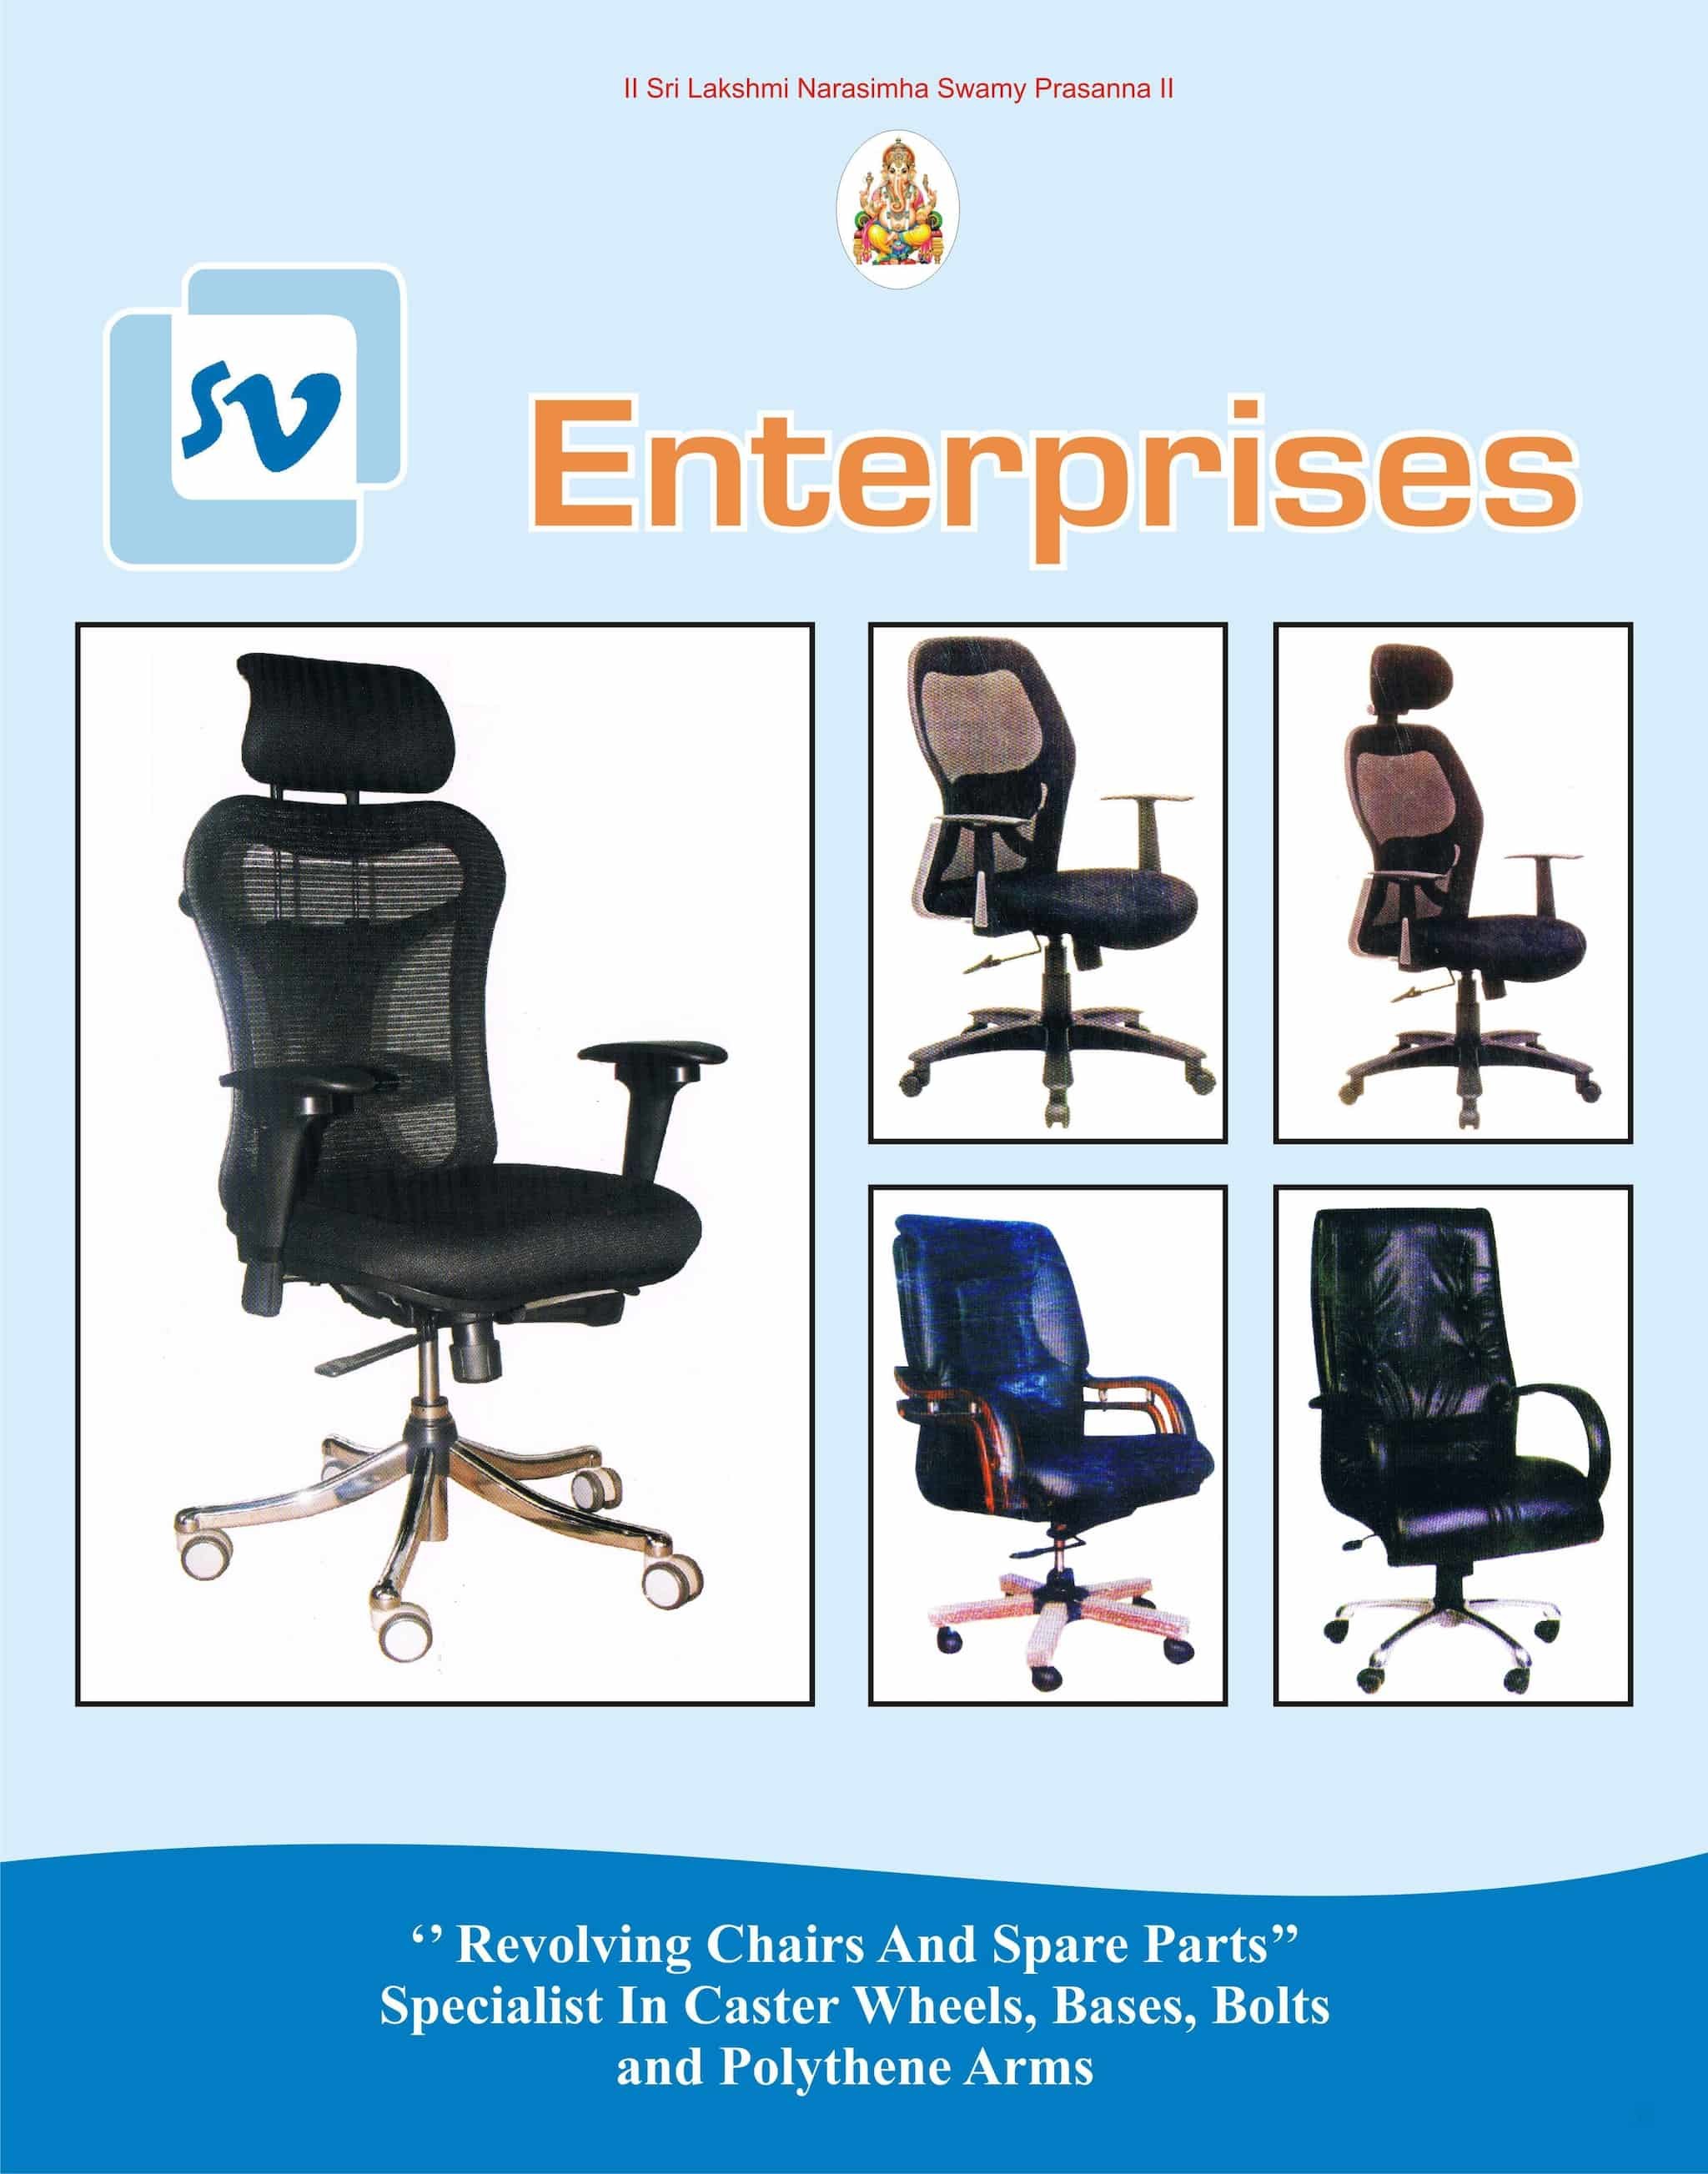 revolving chair spare parts bedroom gumtree s v enterprises yeshwanthpur sofa set repair services in bangalore justdial